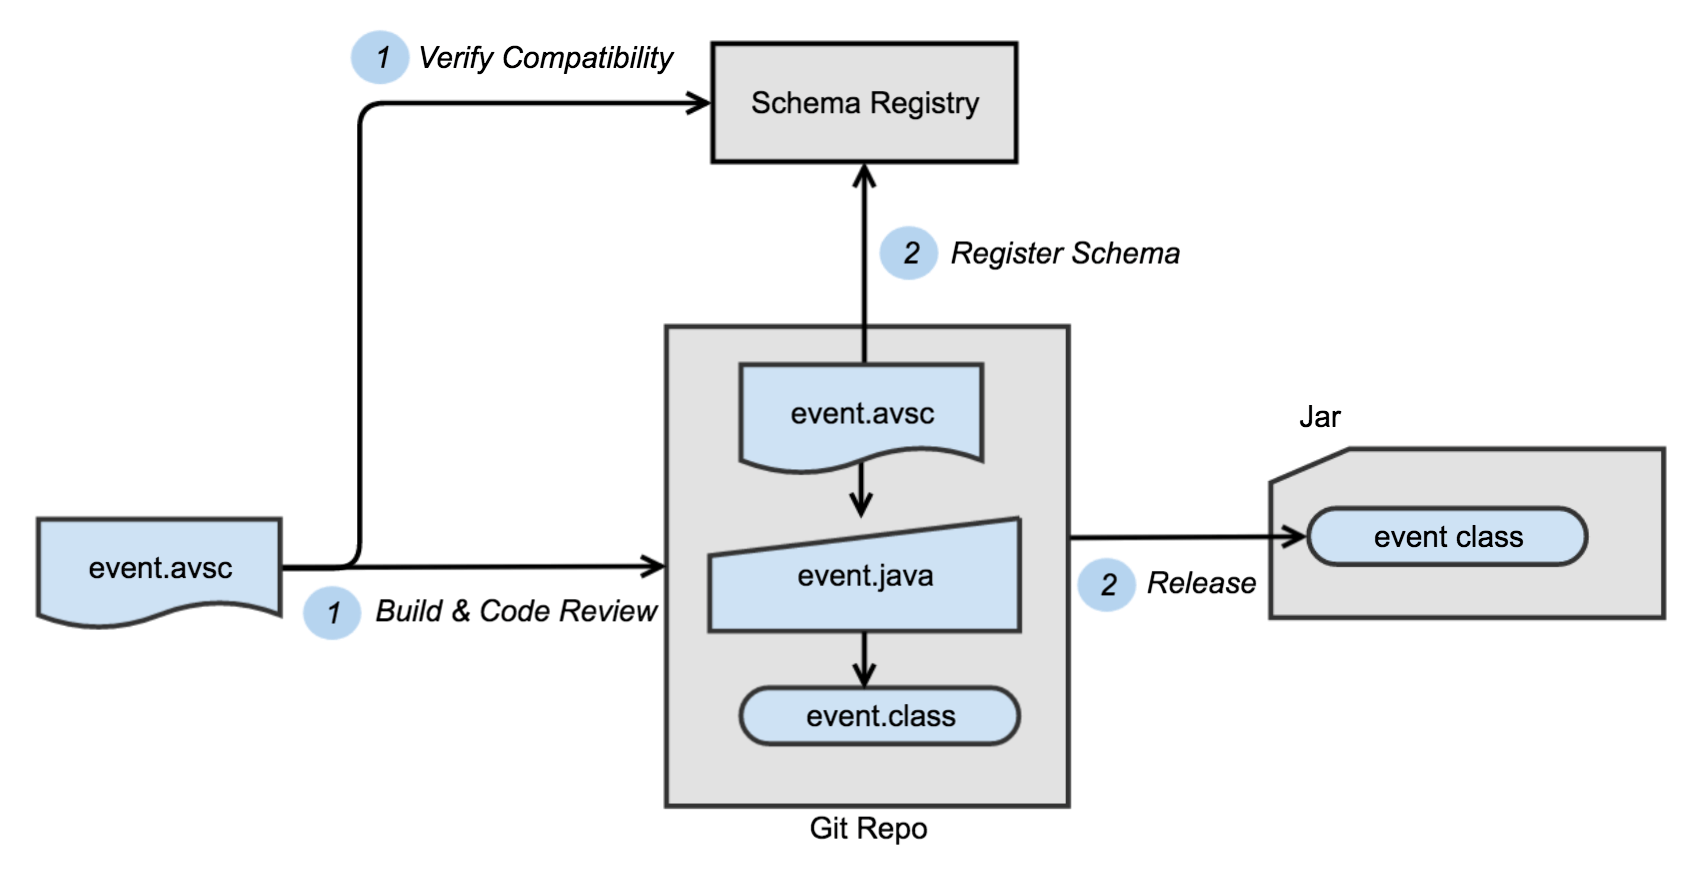 Create and Register Schema